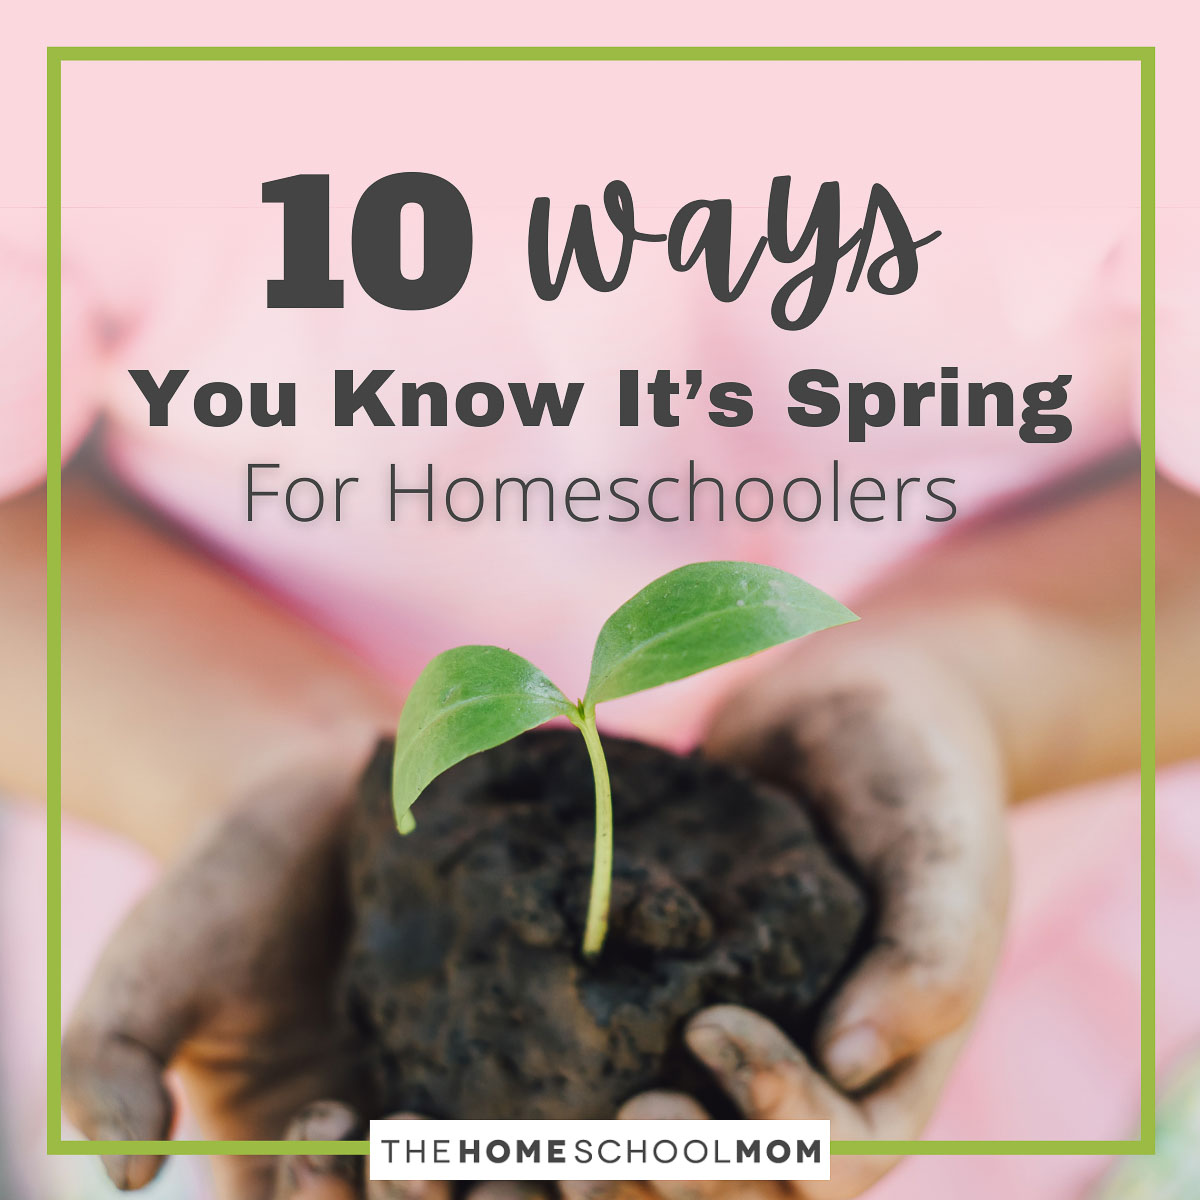 10 Ways You Know It's Spring For Homeschoolers